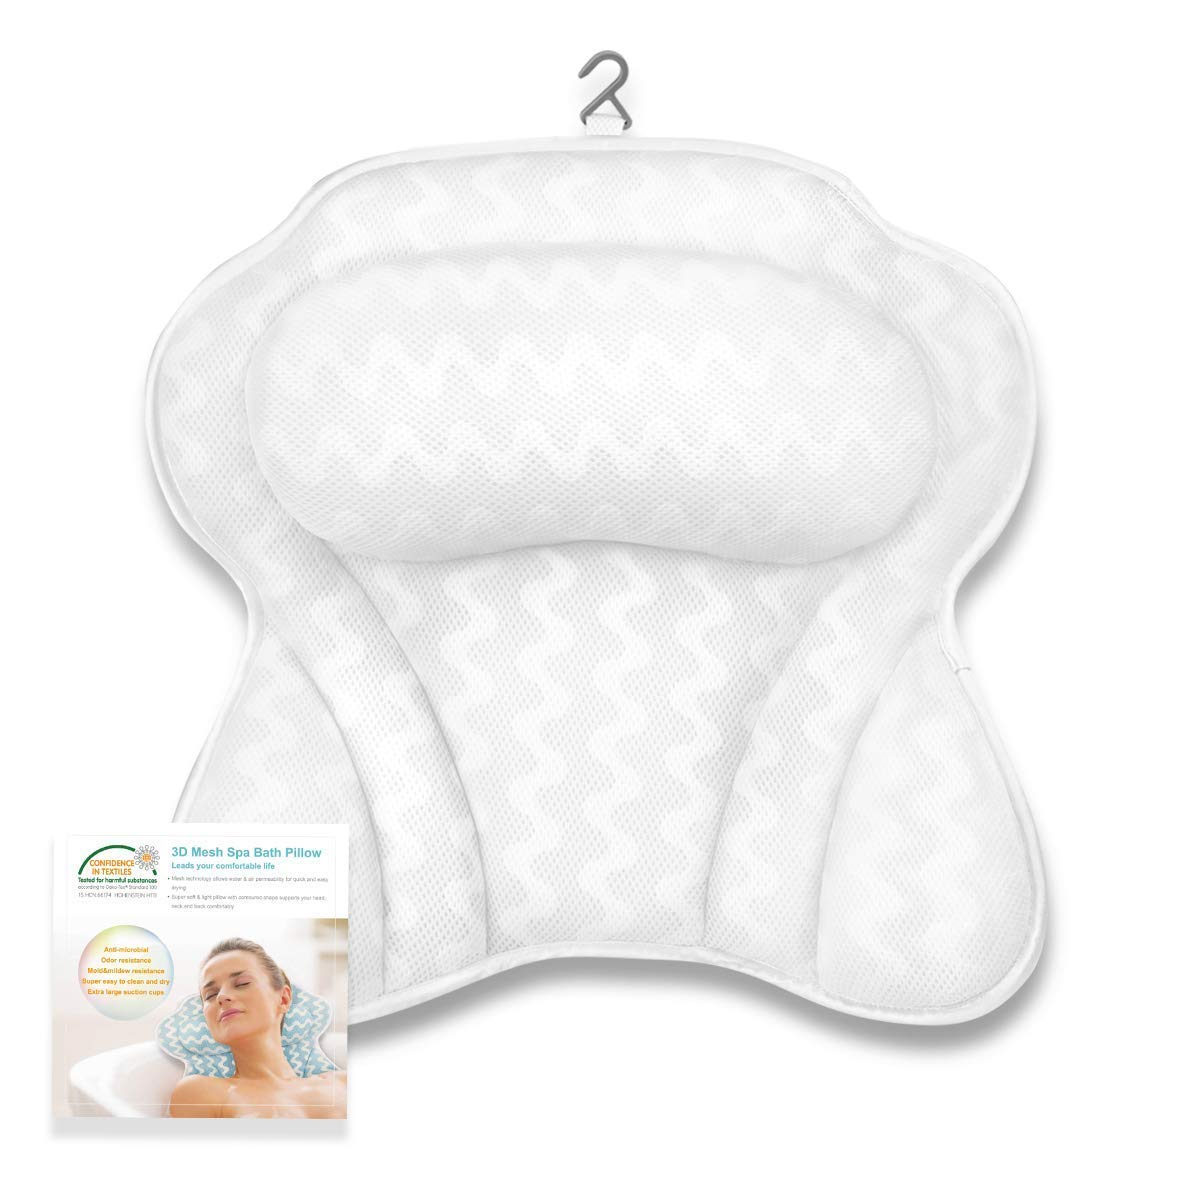 Luxury Bath Pillow with 6 Strong Suction Cups for Tub, Extra Large Size Pillow Bath Cushion for Bathtub, Hot Tub, Jacuzzi, Home Spa Pillow Support for Head, Neck, Back and Shoulders